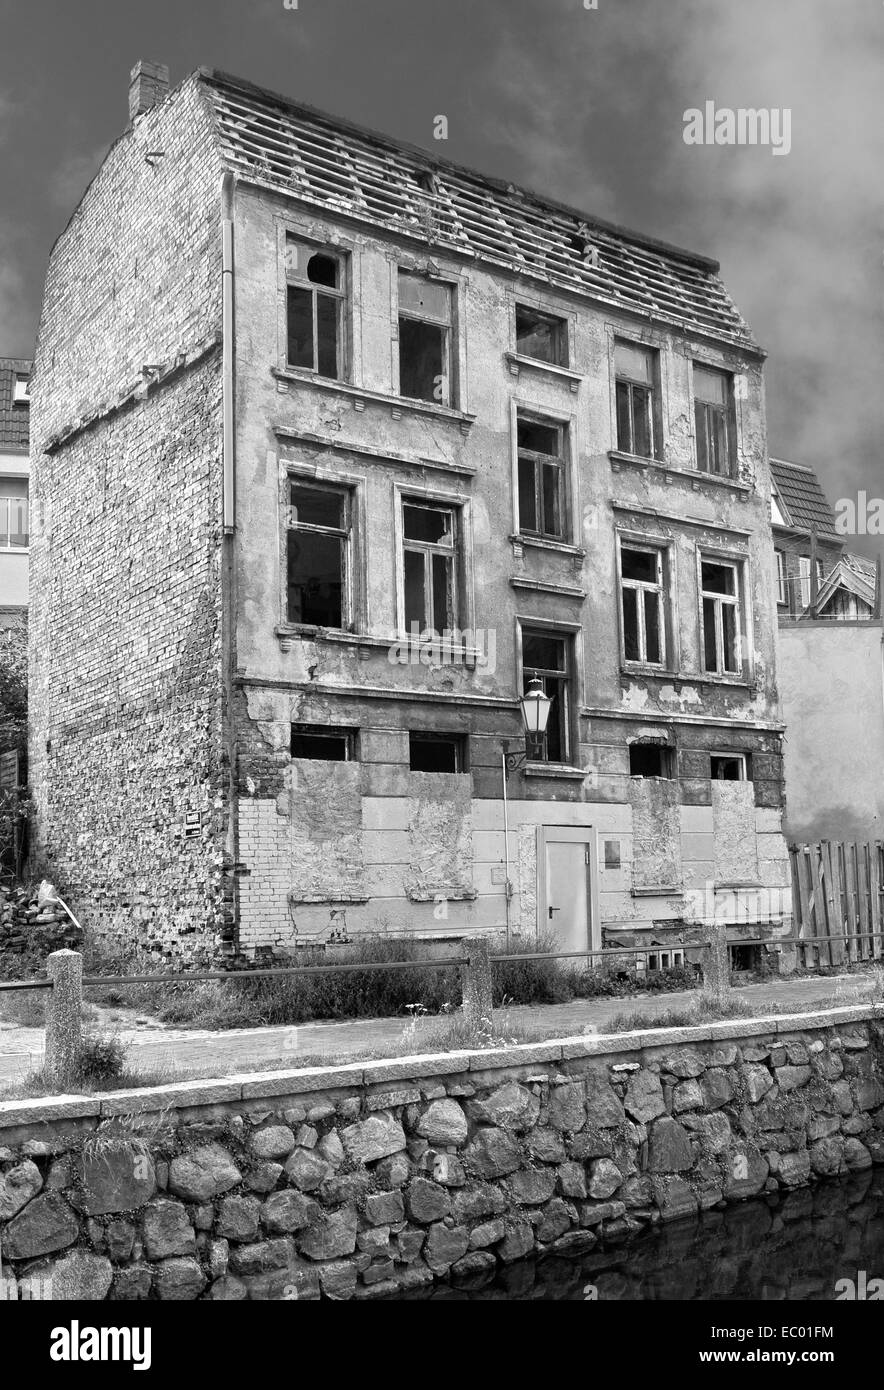 Black and white shot of a abandoned house in the old part of Wismar, Germany - Stock Image